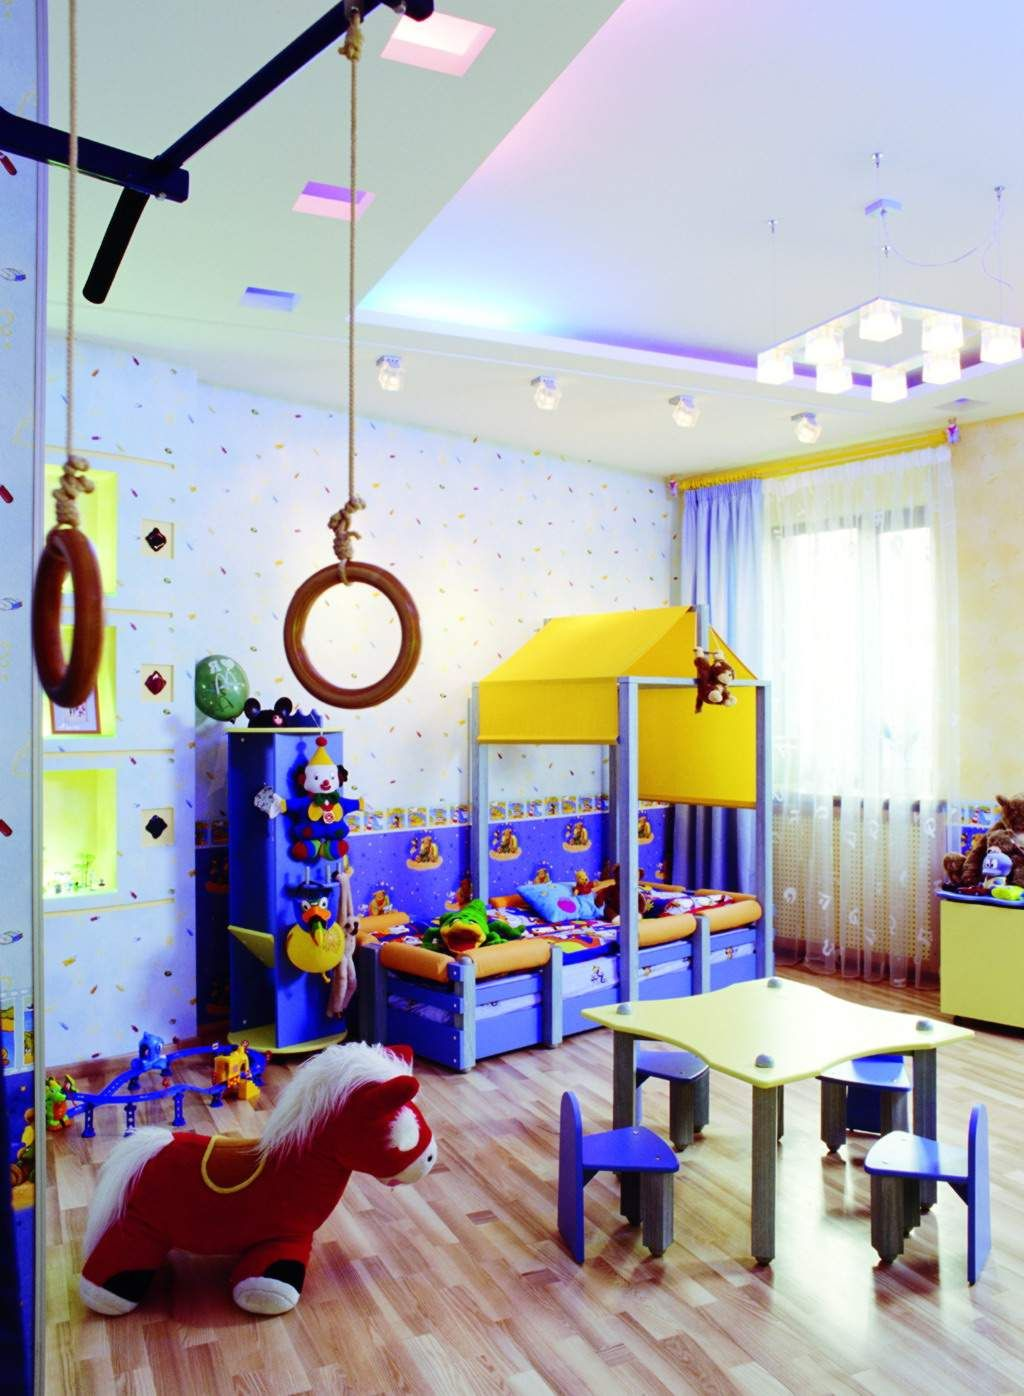 kids bedroom kids room interior design with play and learn area kids room design with wallpaper - Interior Design Kids Bedroom